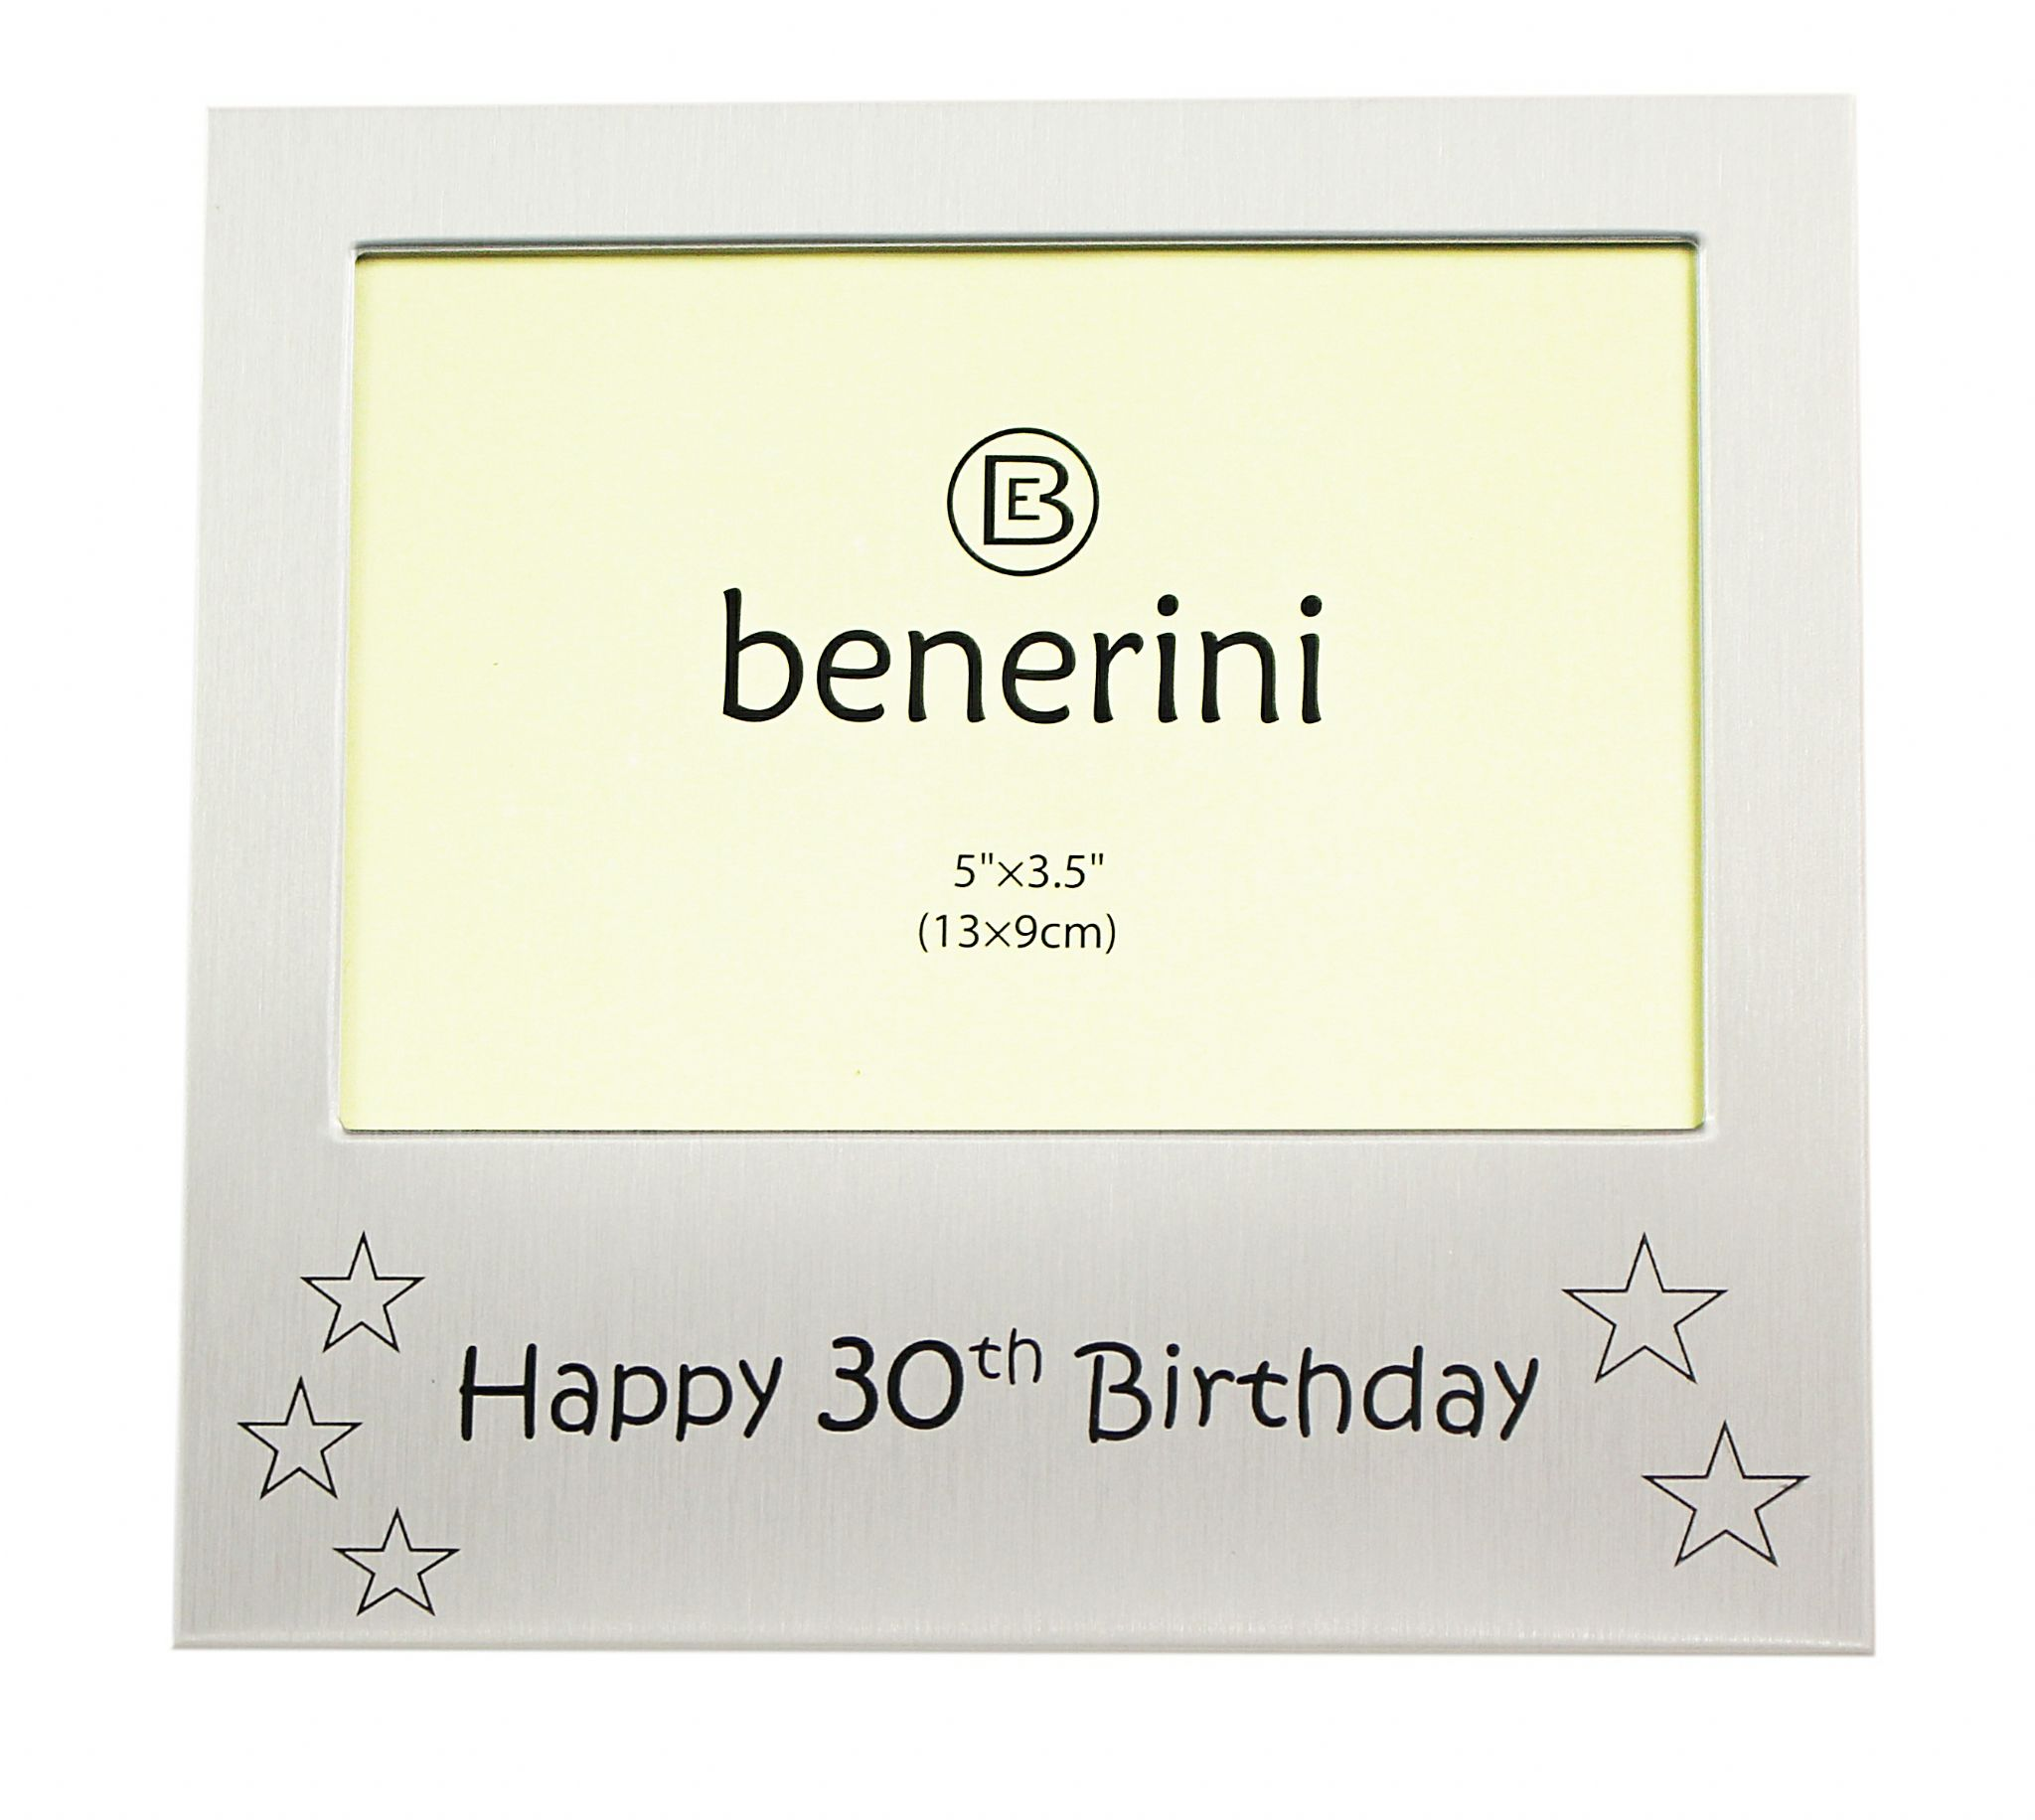 Happy 30th Birthday - Photo Frame Gift - Photo Size 5 x 3.5 Inches ...